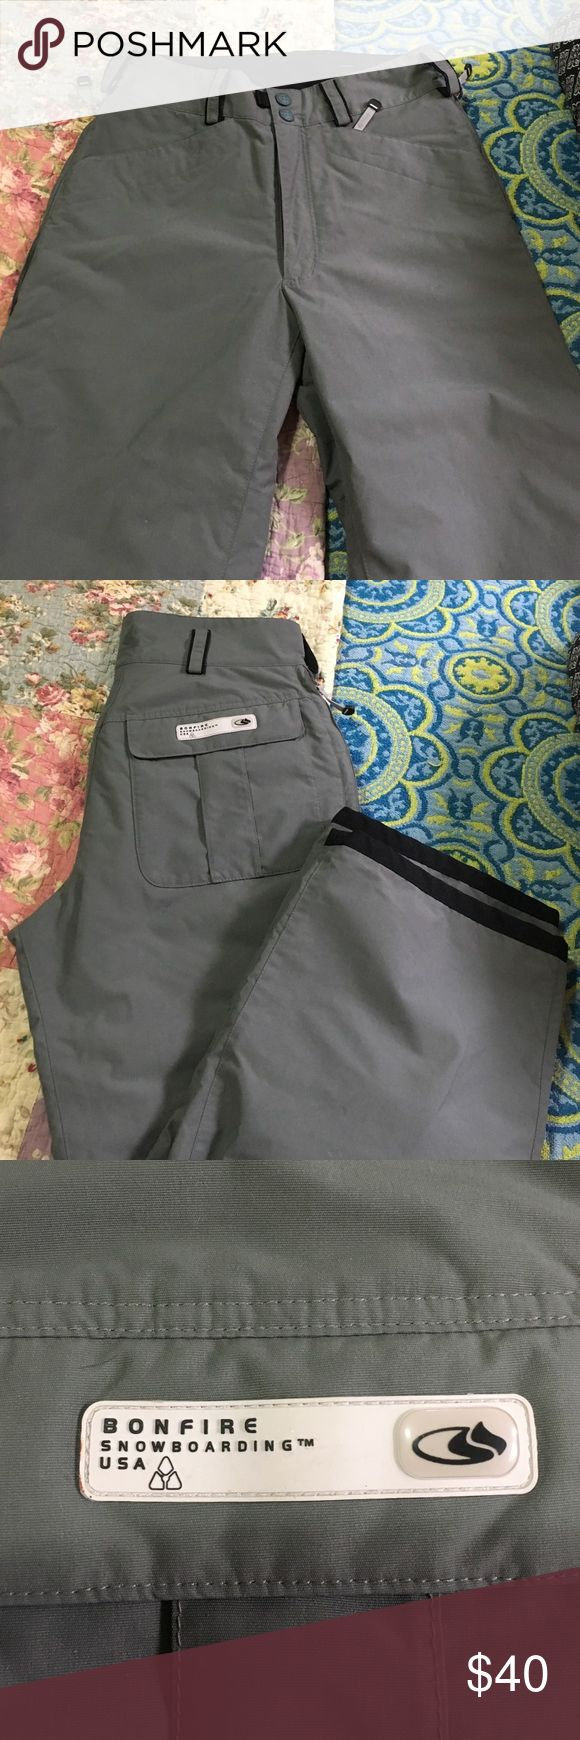 Bonfire Snowboarding pants. Size Medium. Bonfire snowboarding pants. Great condition. Size Medium. Grey and black. Good quality. Pants